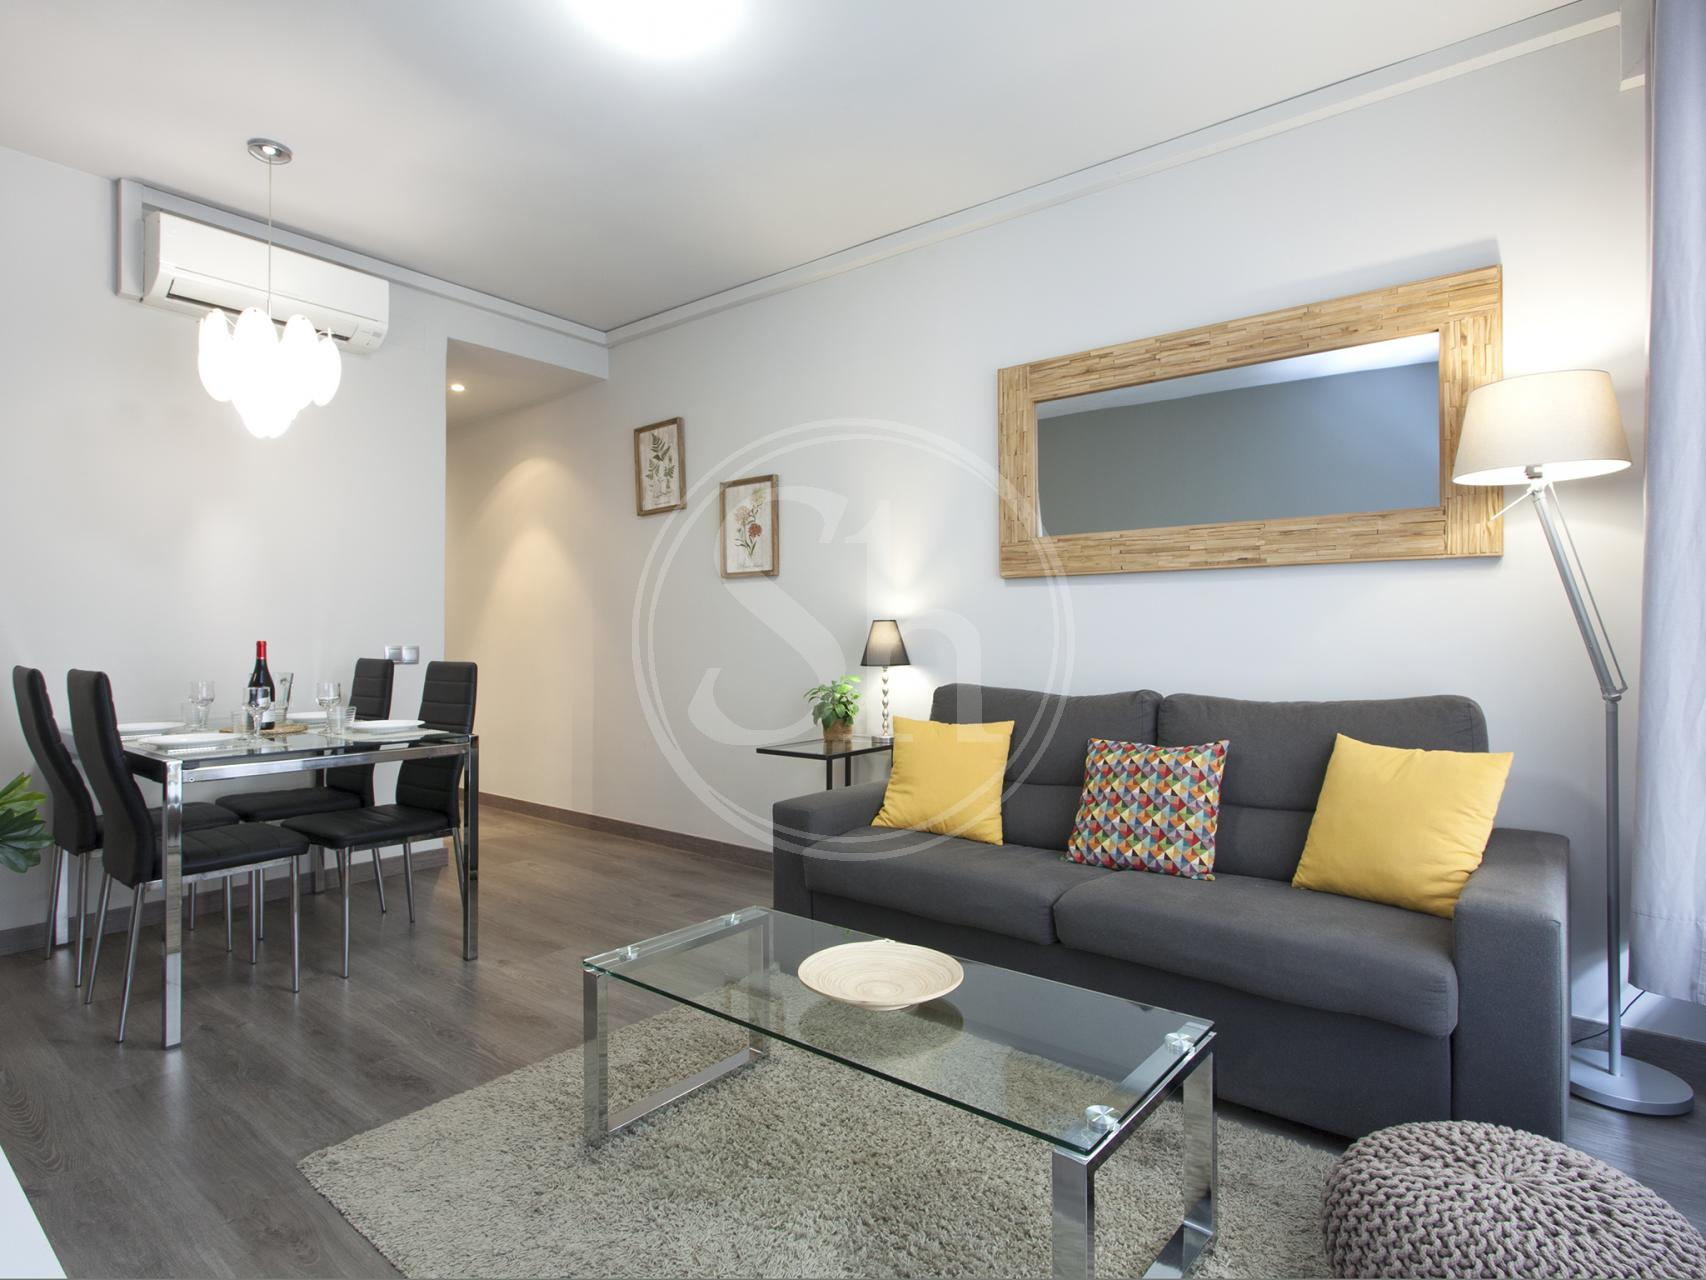 Renovated apartment for rent close to Plaza de España